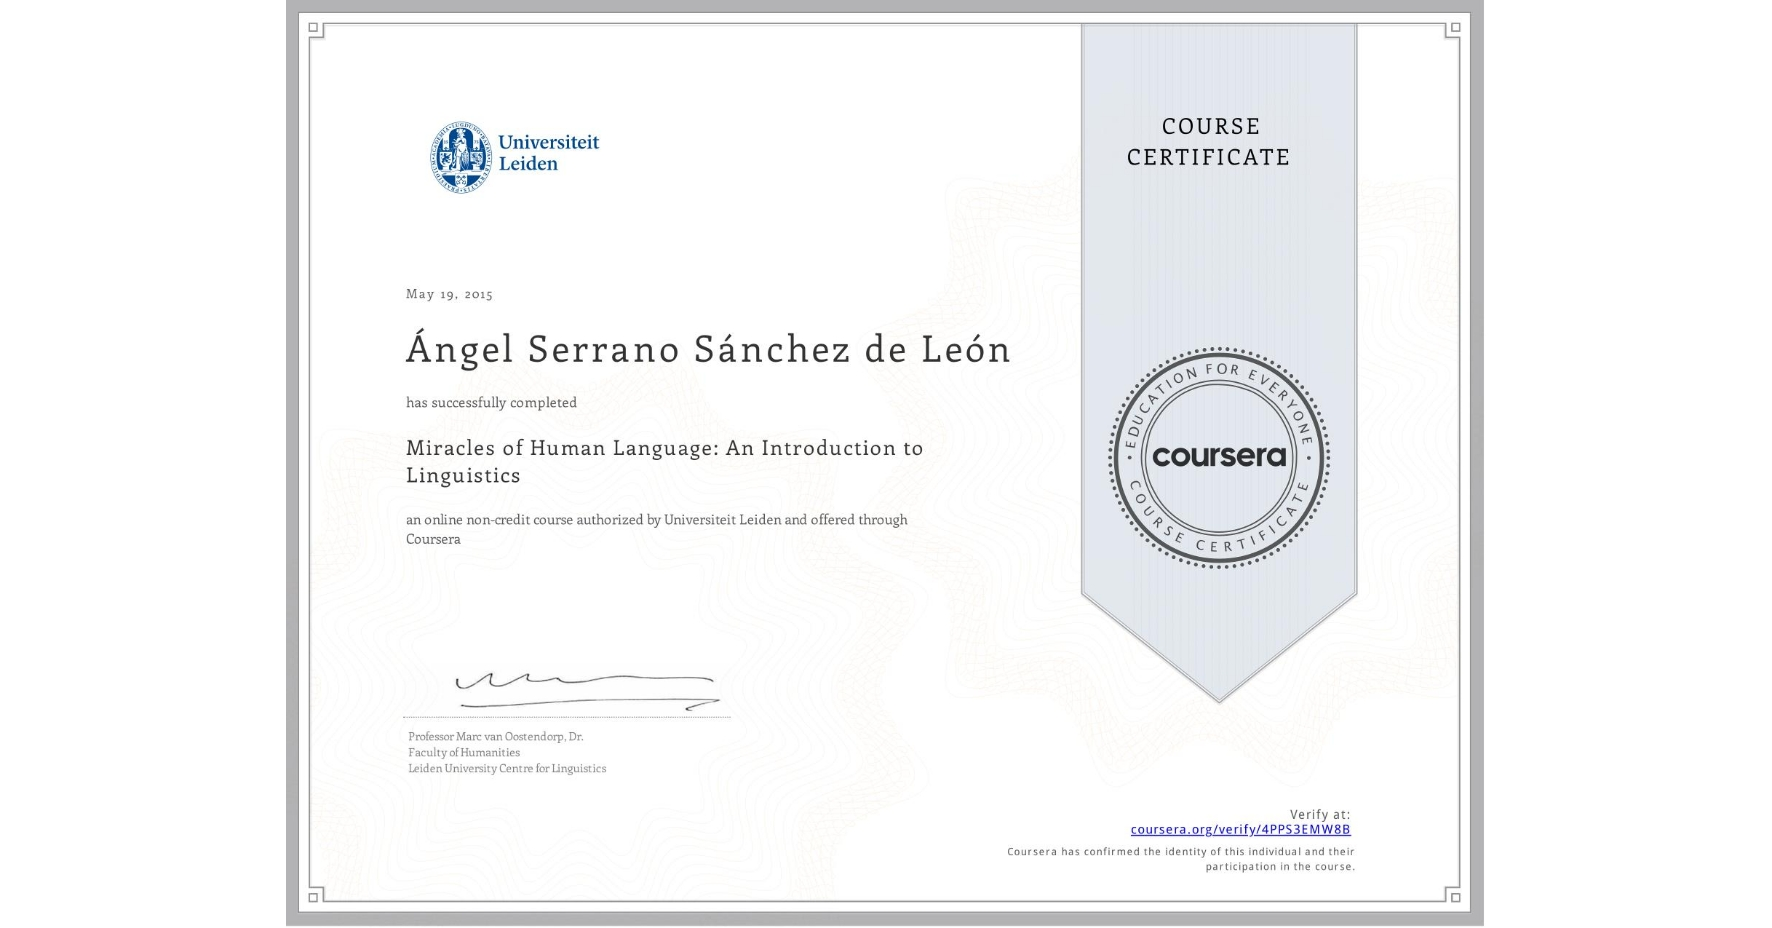 View certificate for Ángel Serrano Sánchez de León, Miracles of Human Language: An Introduction to Linguistics, an online non-credit course authorized by Universiteit Leiden and offered through Coursera